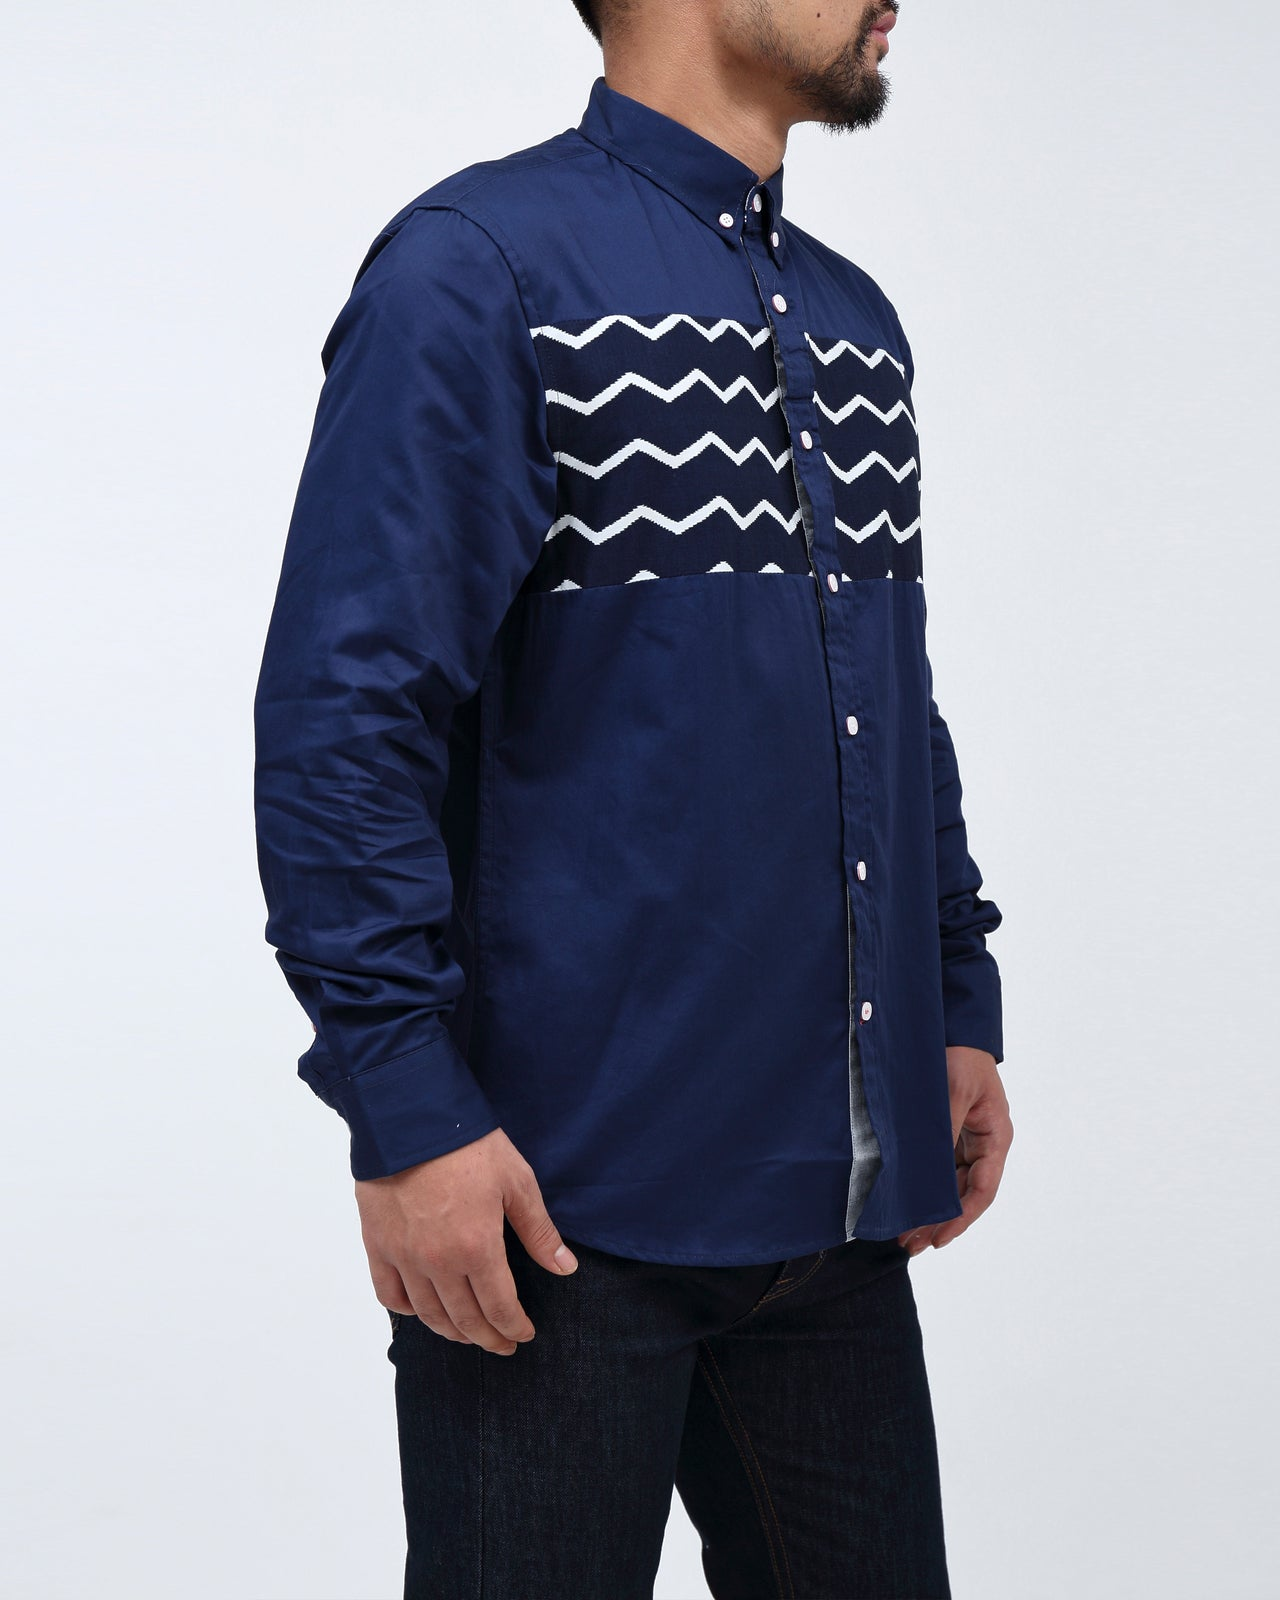 Zig Zag Shirt - Color: Navy | Blue